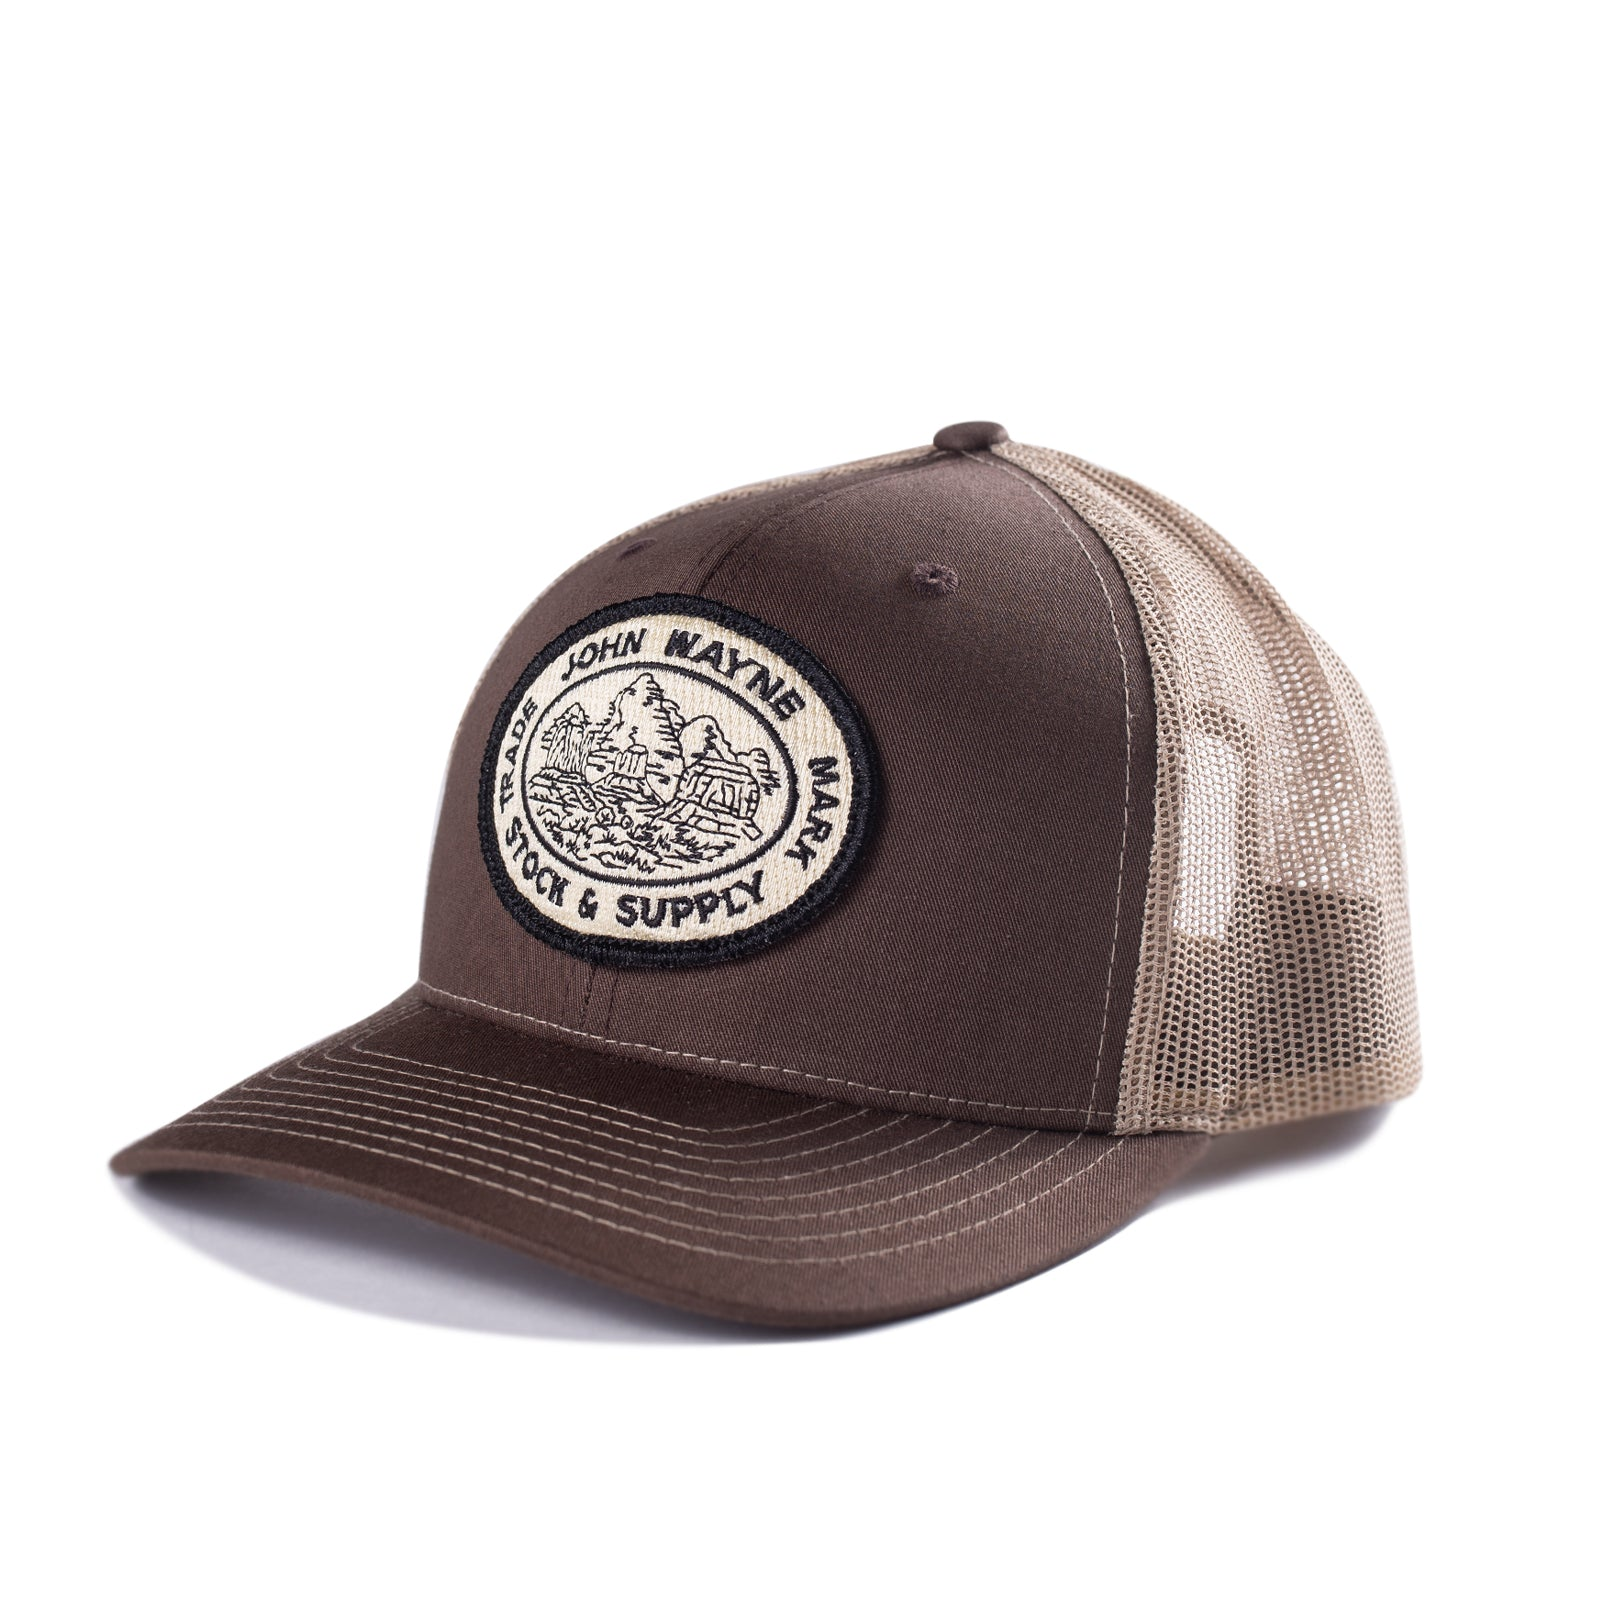 Stock & Supply Hat- Brown